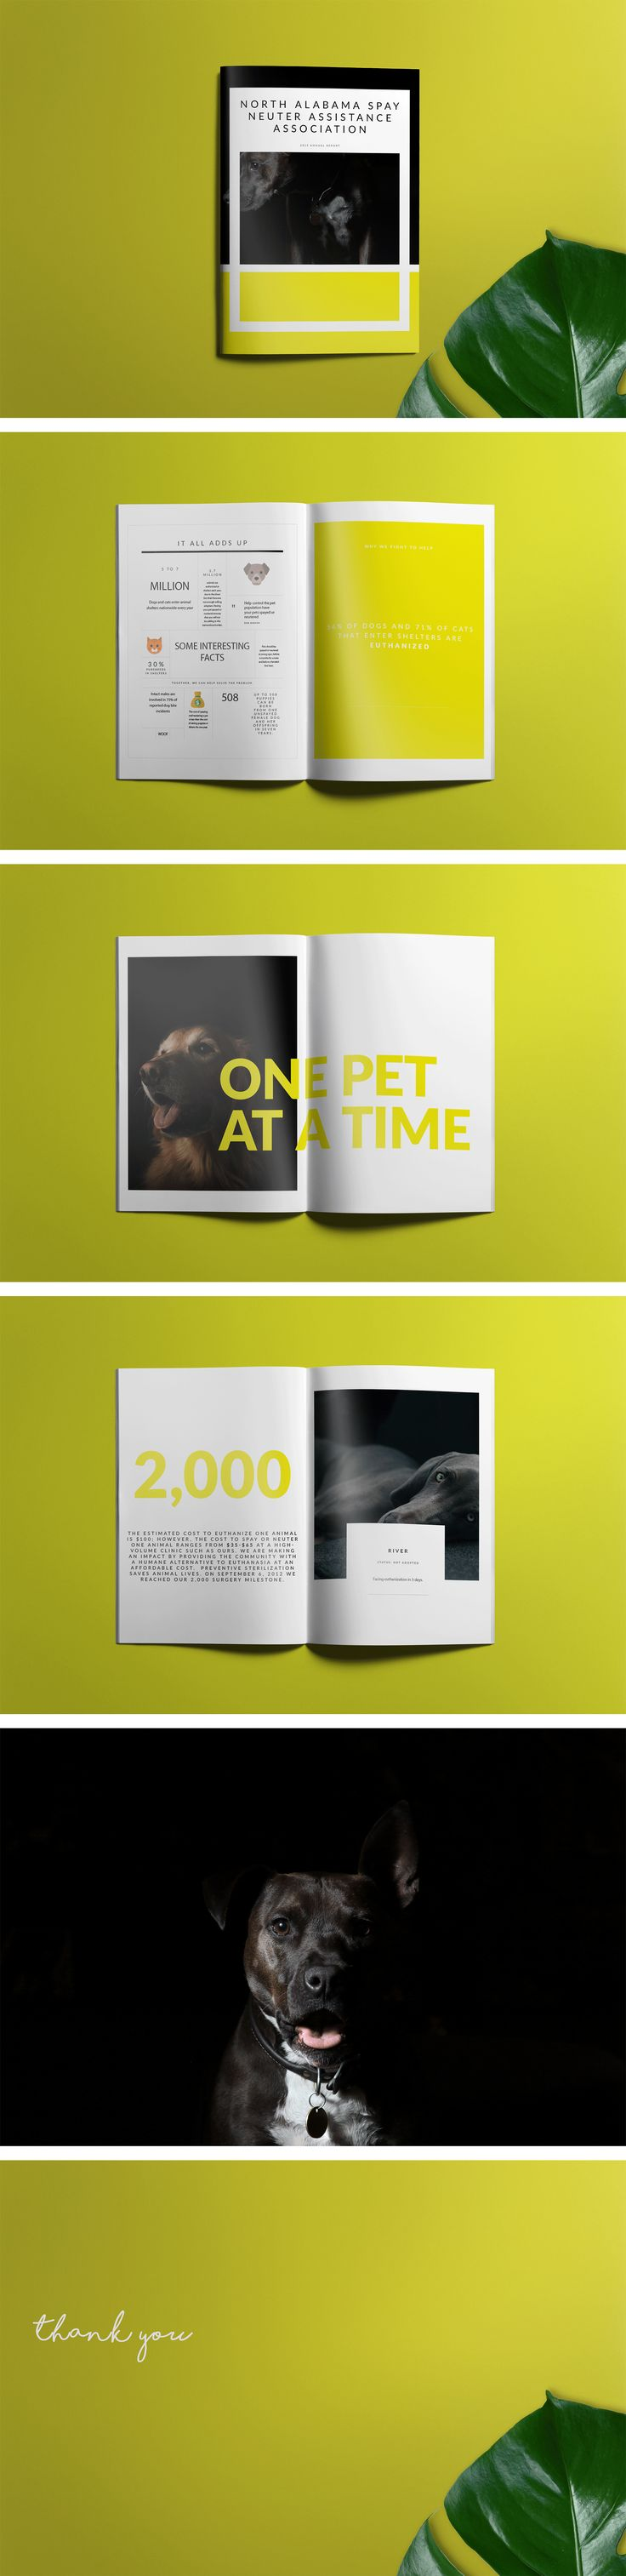 Nonprofit Annual Report | Nonprofit Organization | Year In Review | Editorial Design | Animal Shelter | Spay and Neuter